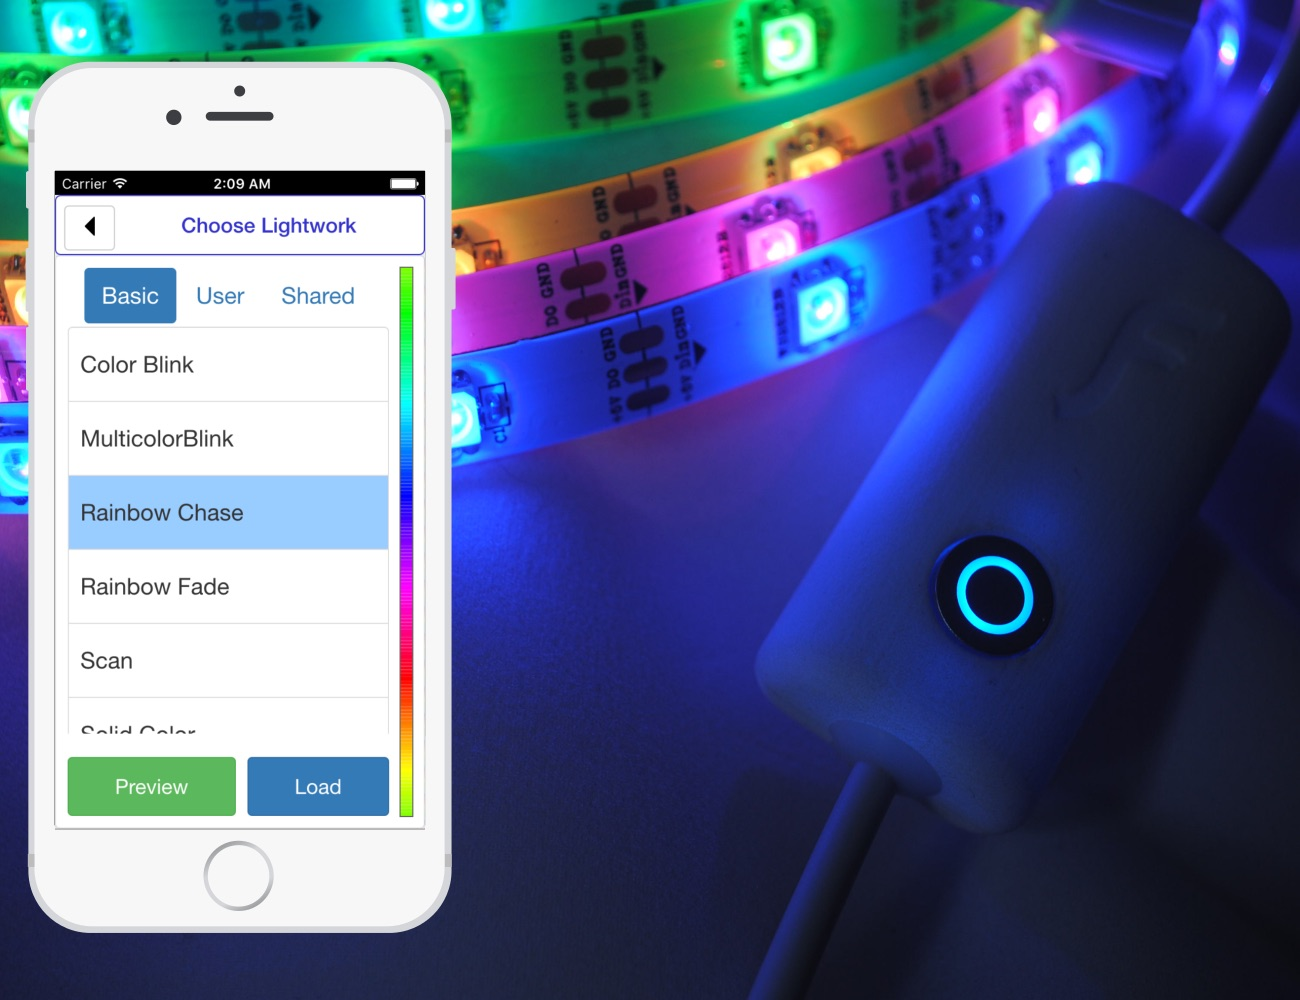 Flickerstrip – Create Your Own Personal Light Show